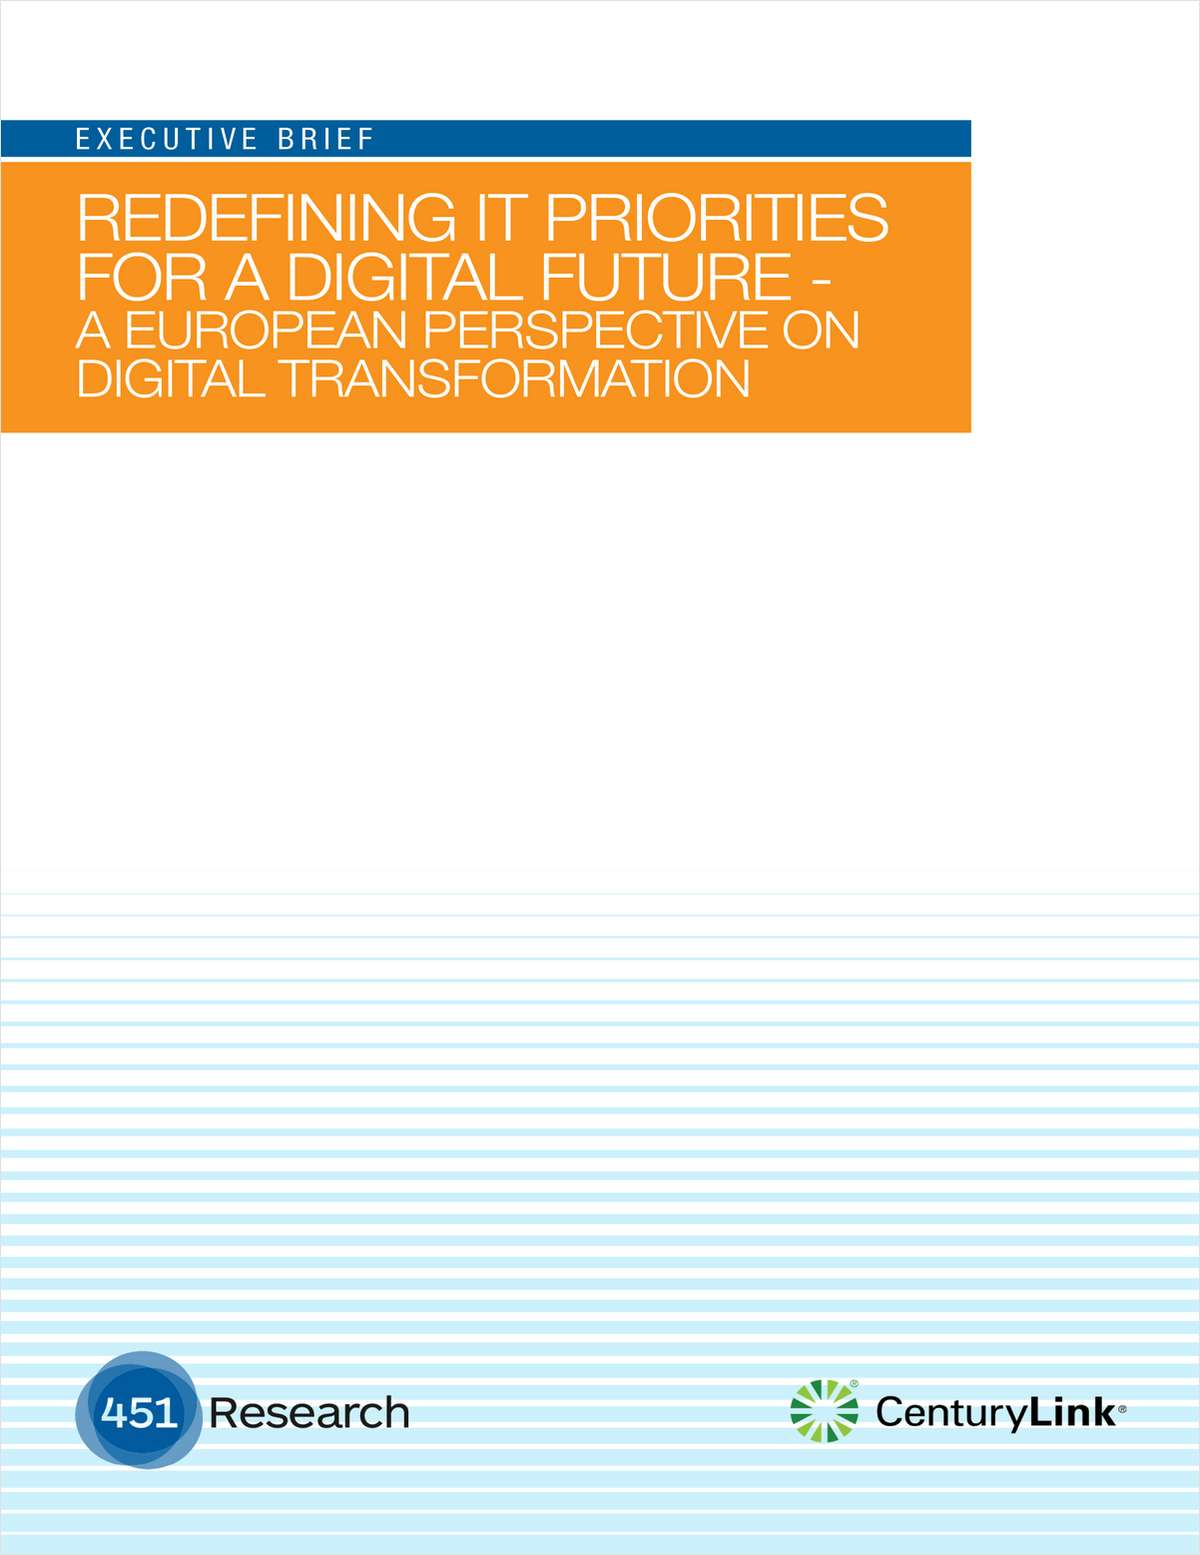 Redefining IT Priorities for a Digital Future - A European Perspective on Digital Transformation